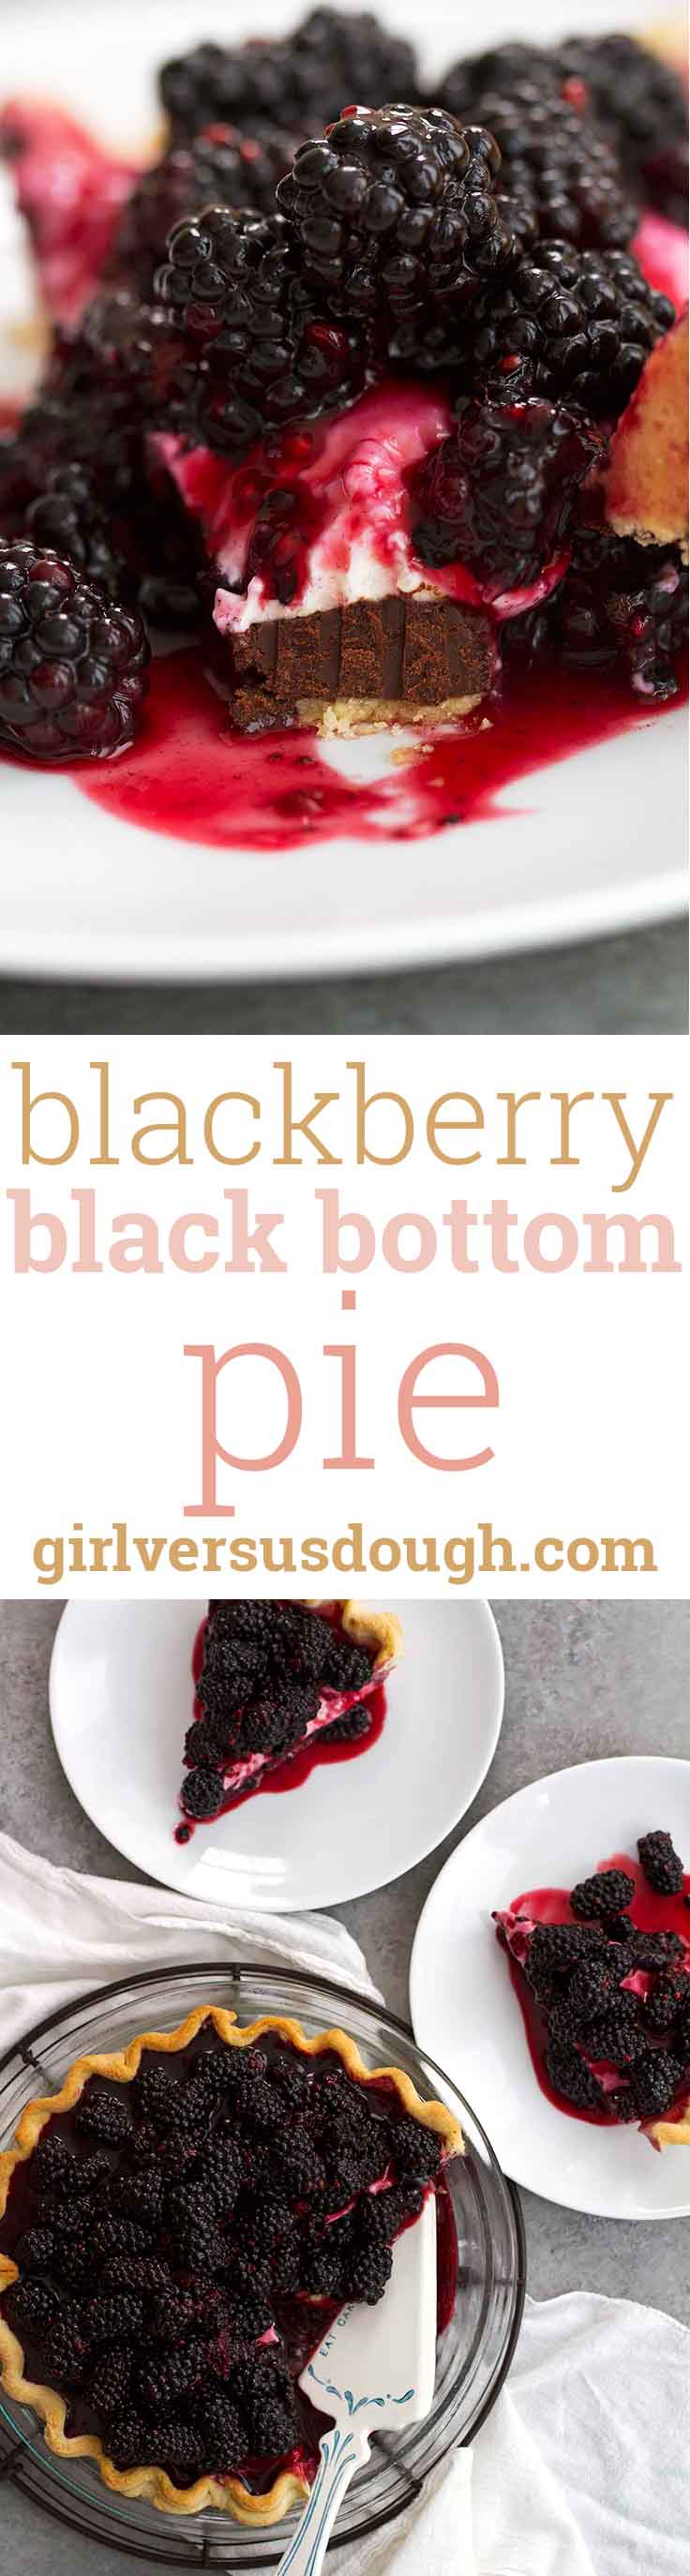 Blackberry Black Bottom Pie -- Layers of dark chocolate, cheesecake and fresh blackberry compote make up this delicious variation on a classic dessert. girlversusdough.com @girlversusdough